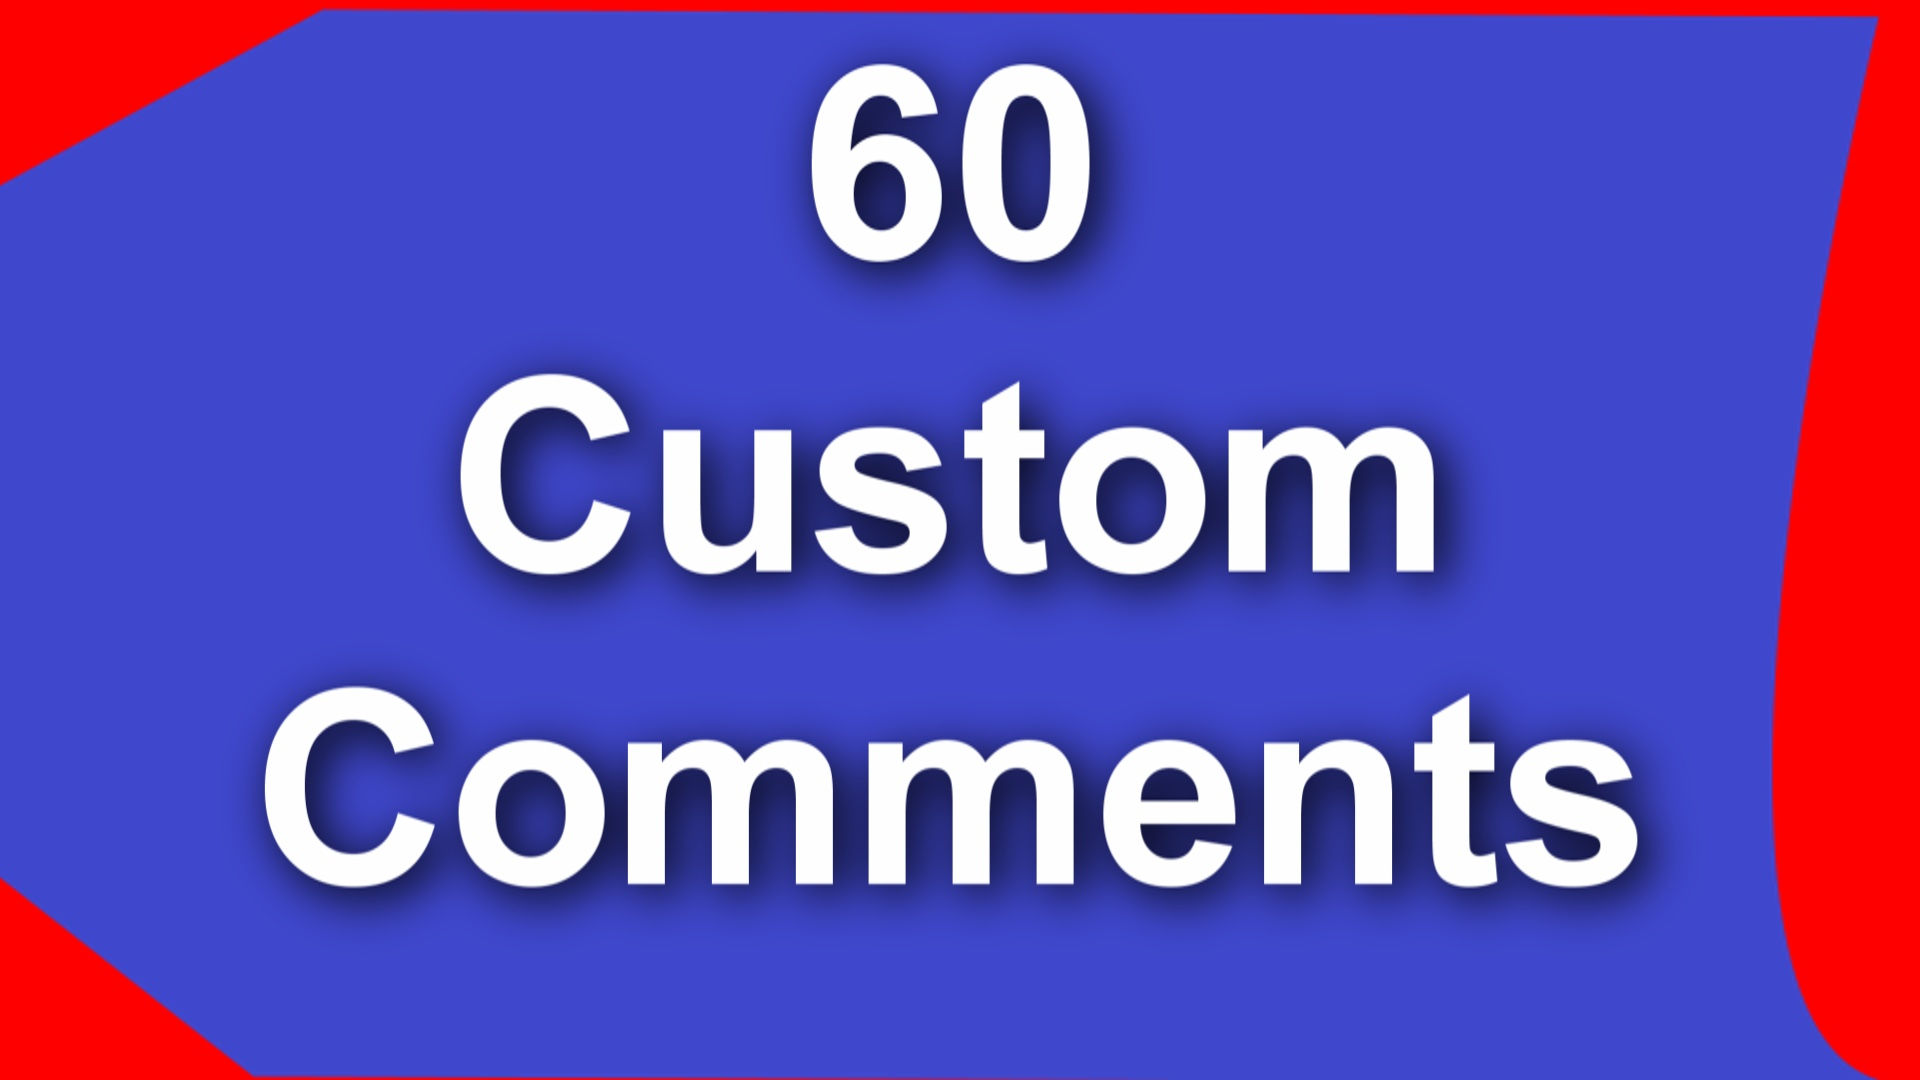 Give 60 Custom Comments in Youtube Video